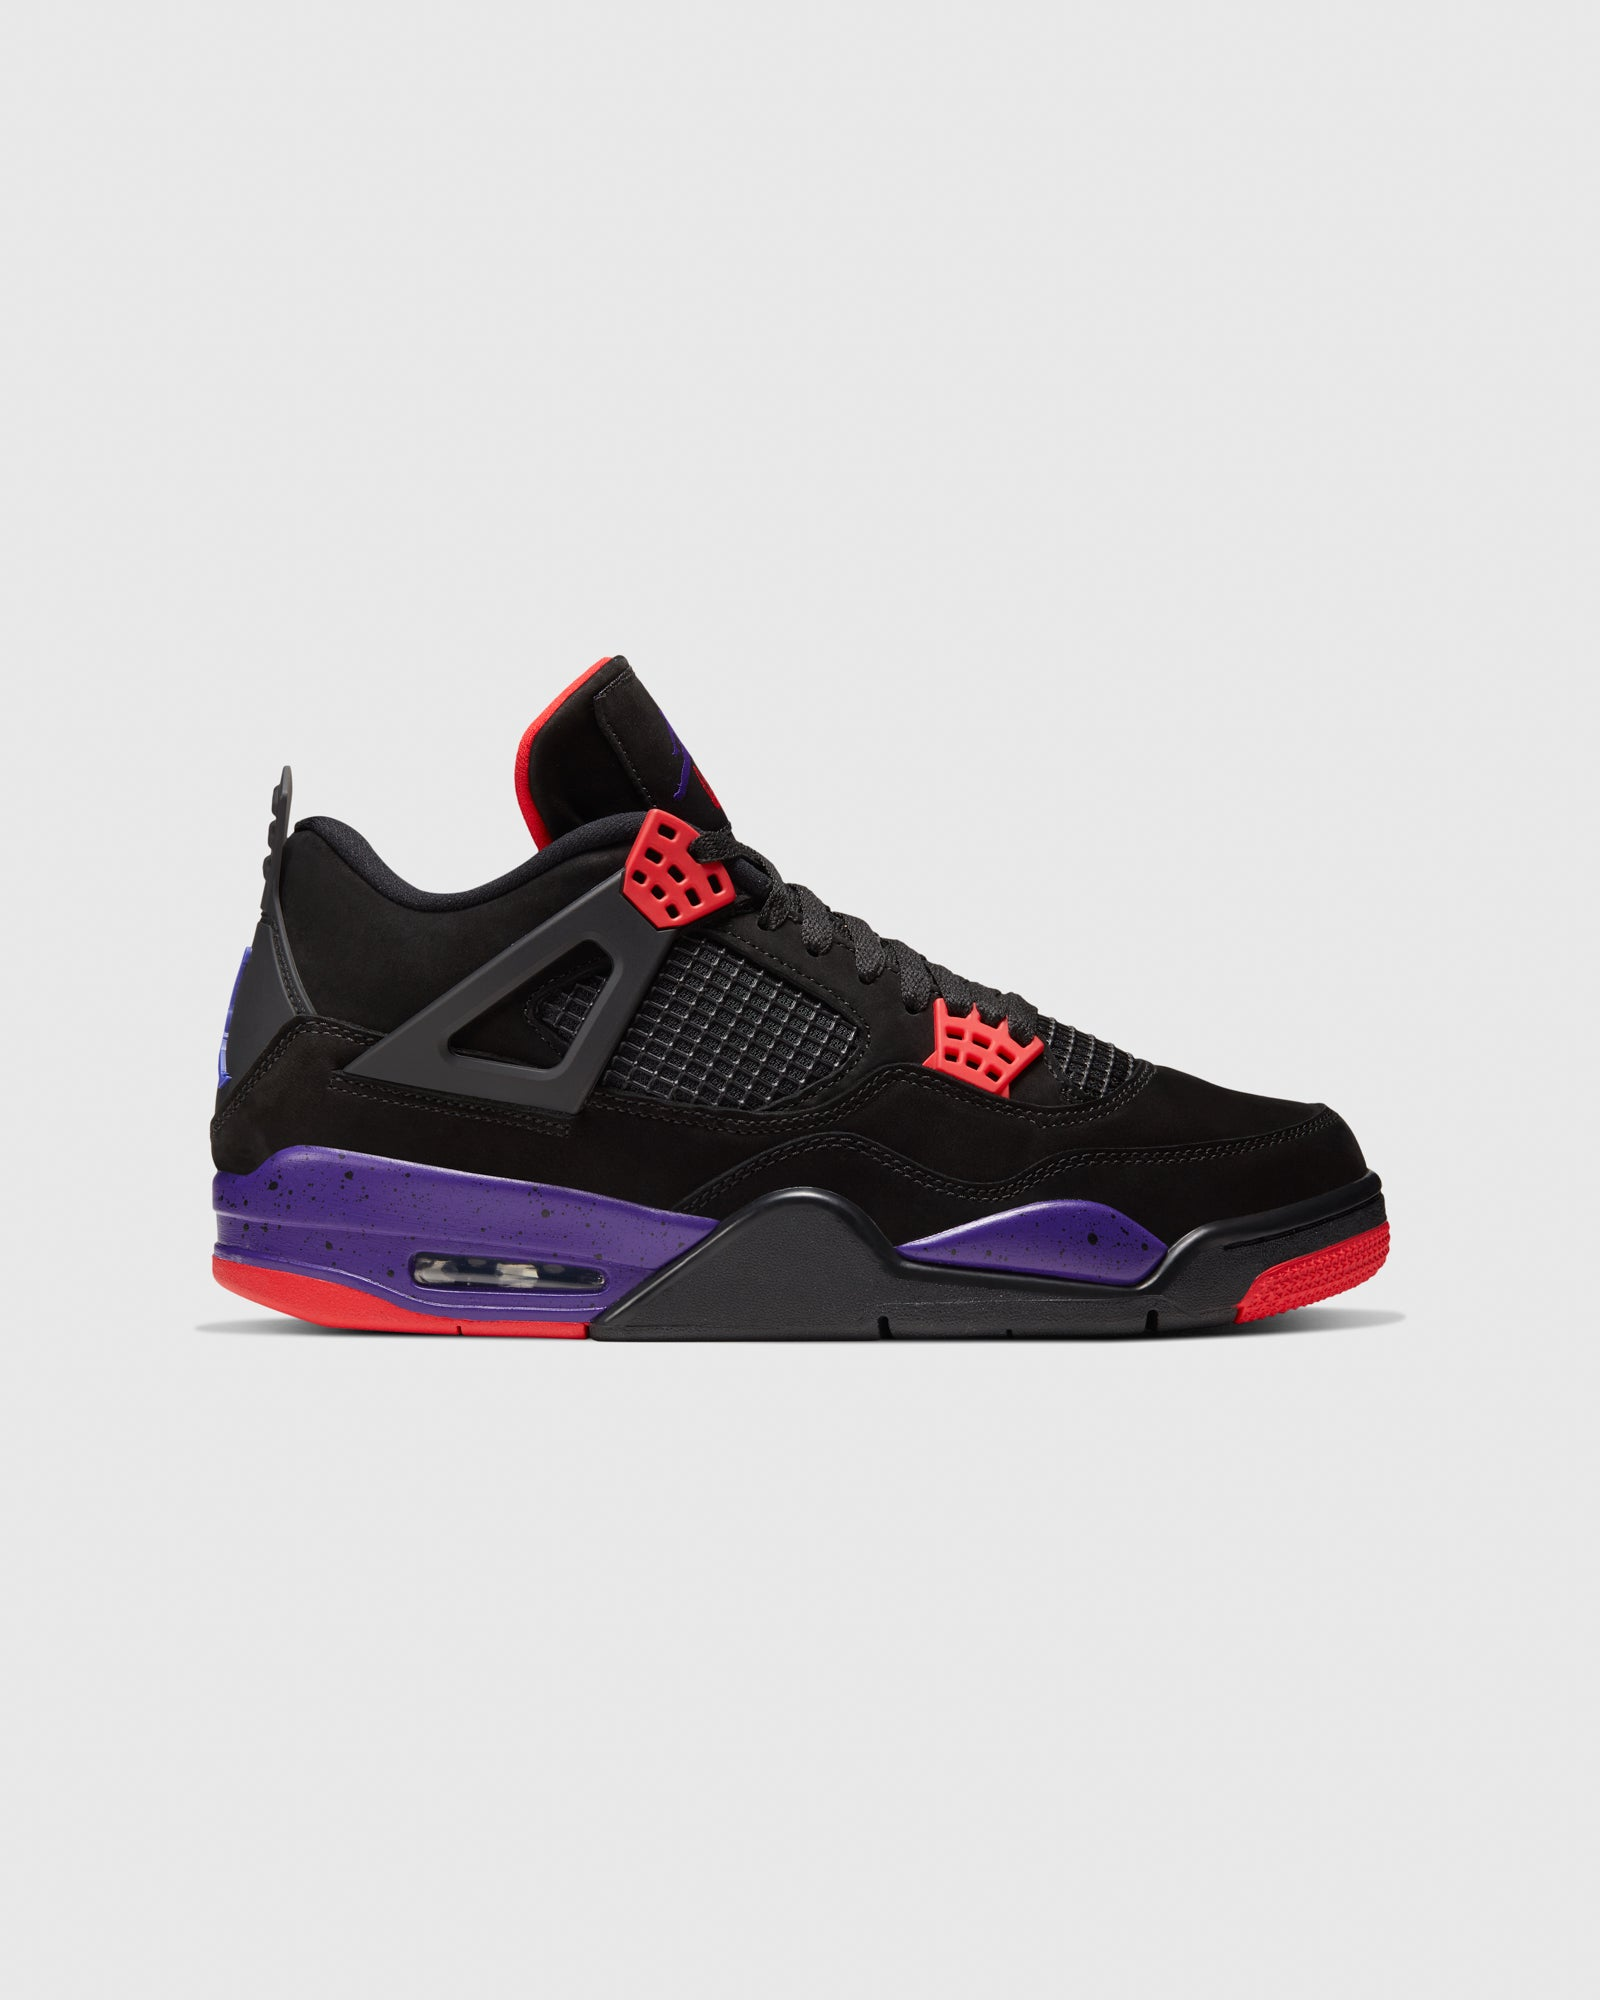 AIR JORDAN IV - BLACK/COURT PURPLE IMAGE #1